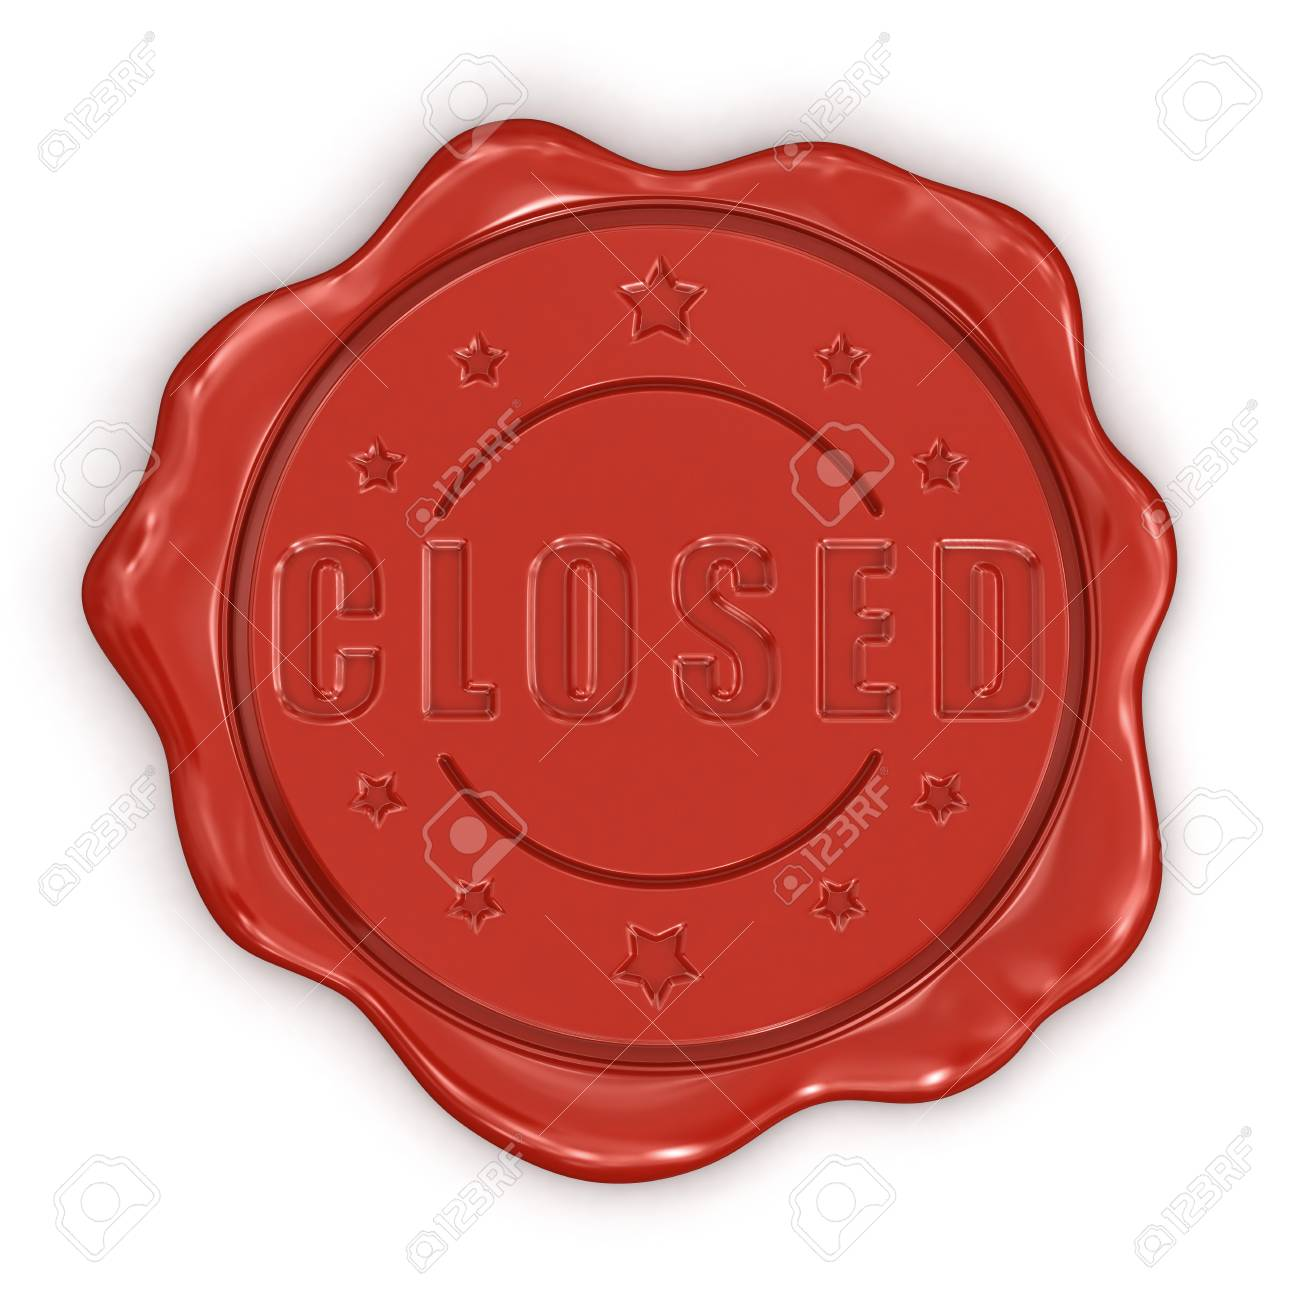 Wax Stamp Closed Stock Photo - 23006006